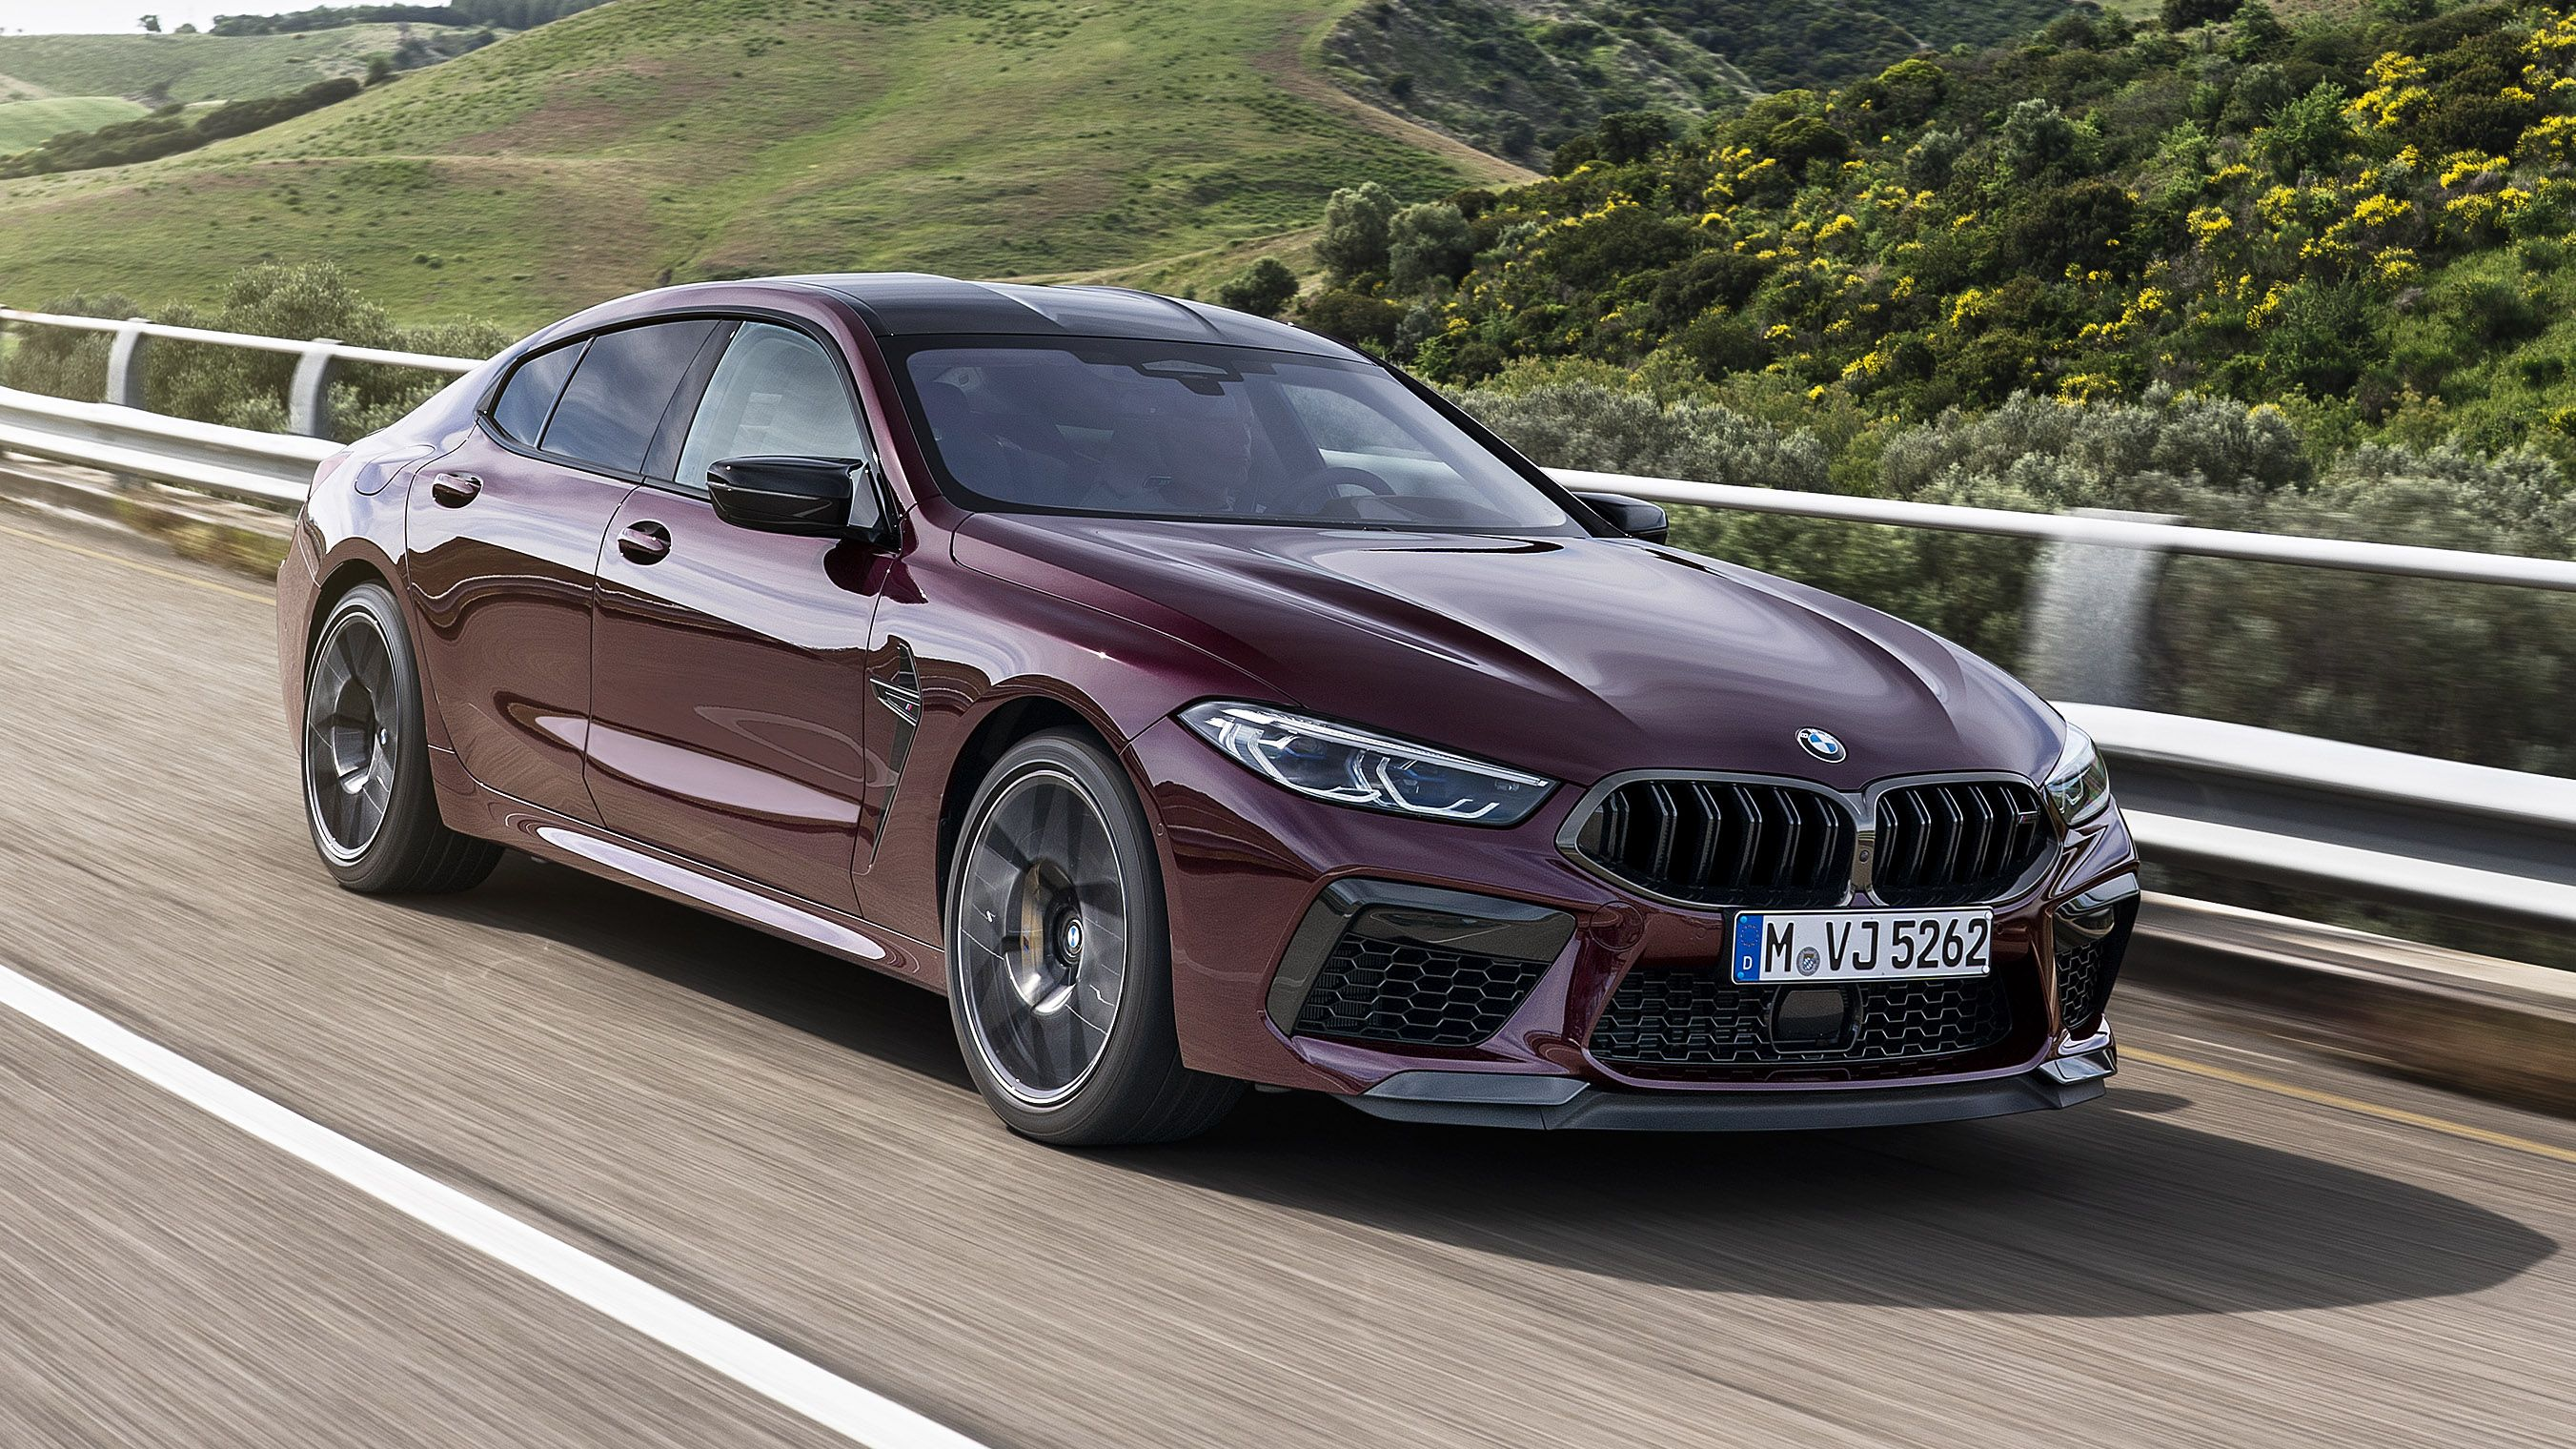 2020 Bmw M8 Gran Coupe Revealed With Competition And First Edition Trims Bmw Gran Coupe Coupe